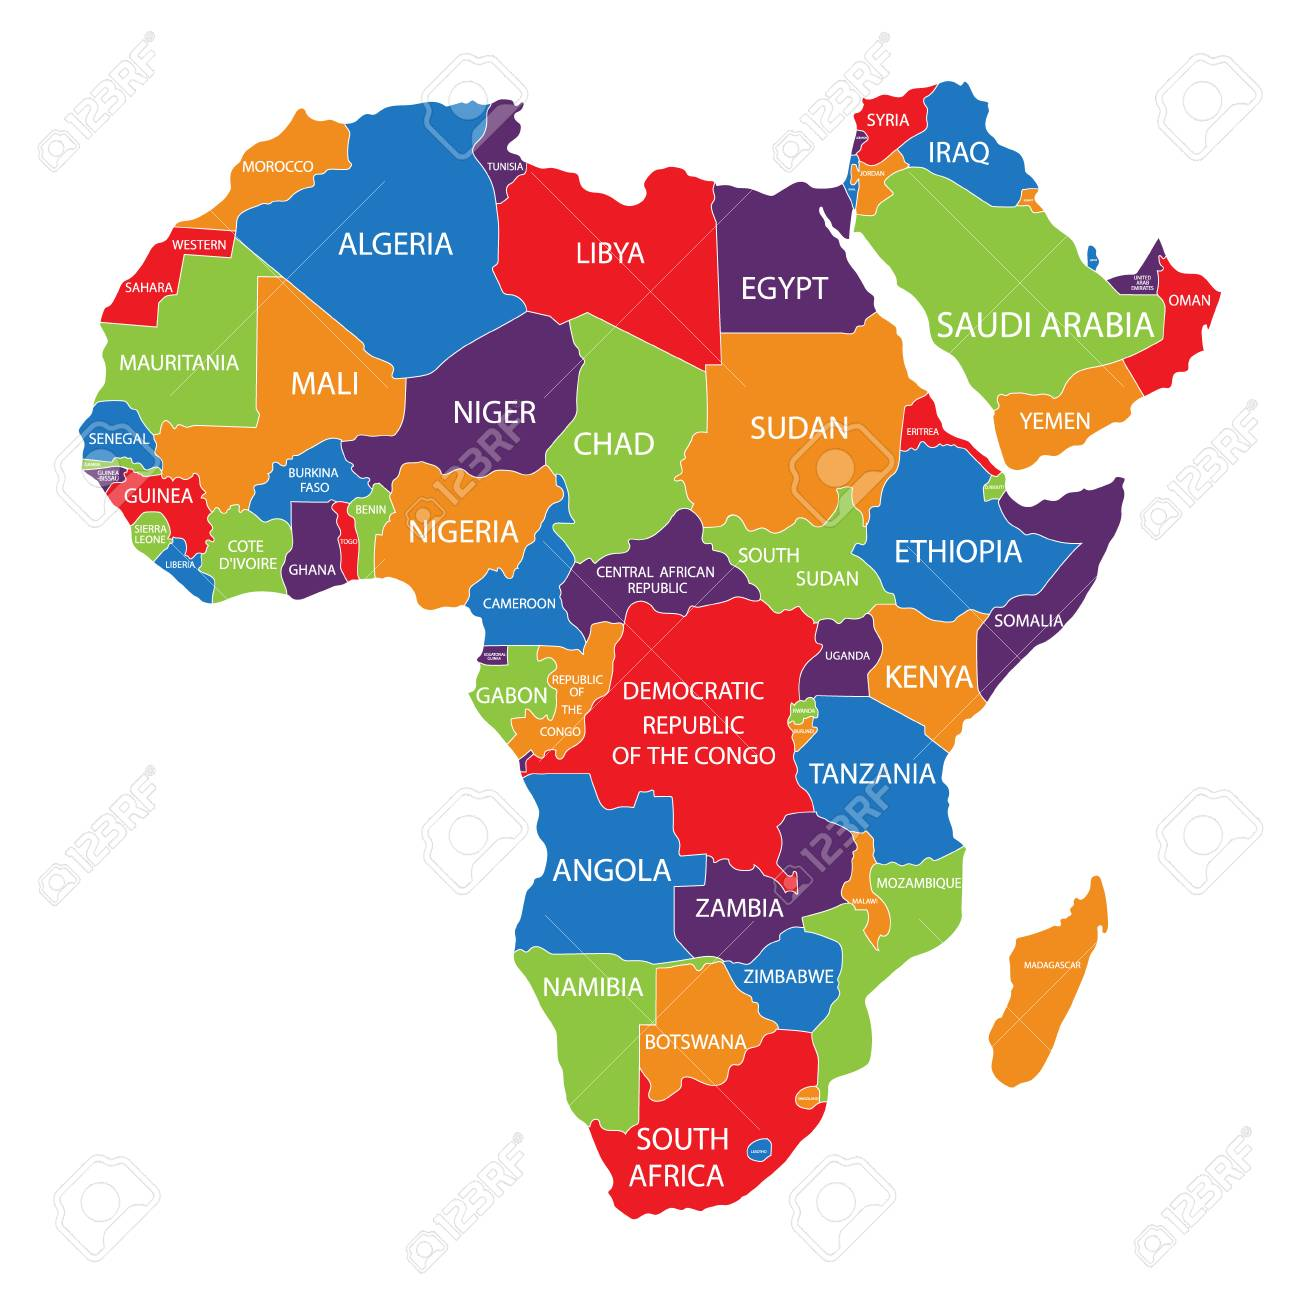 Raster Illustration Africa Map With Countries Names Isolated